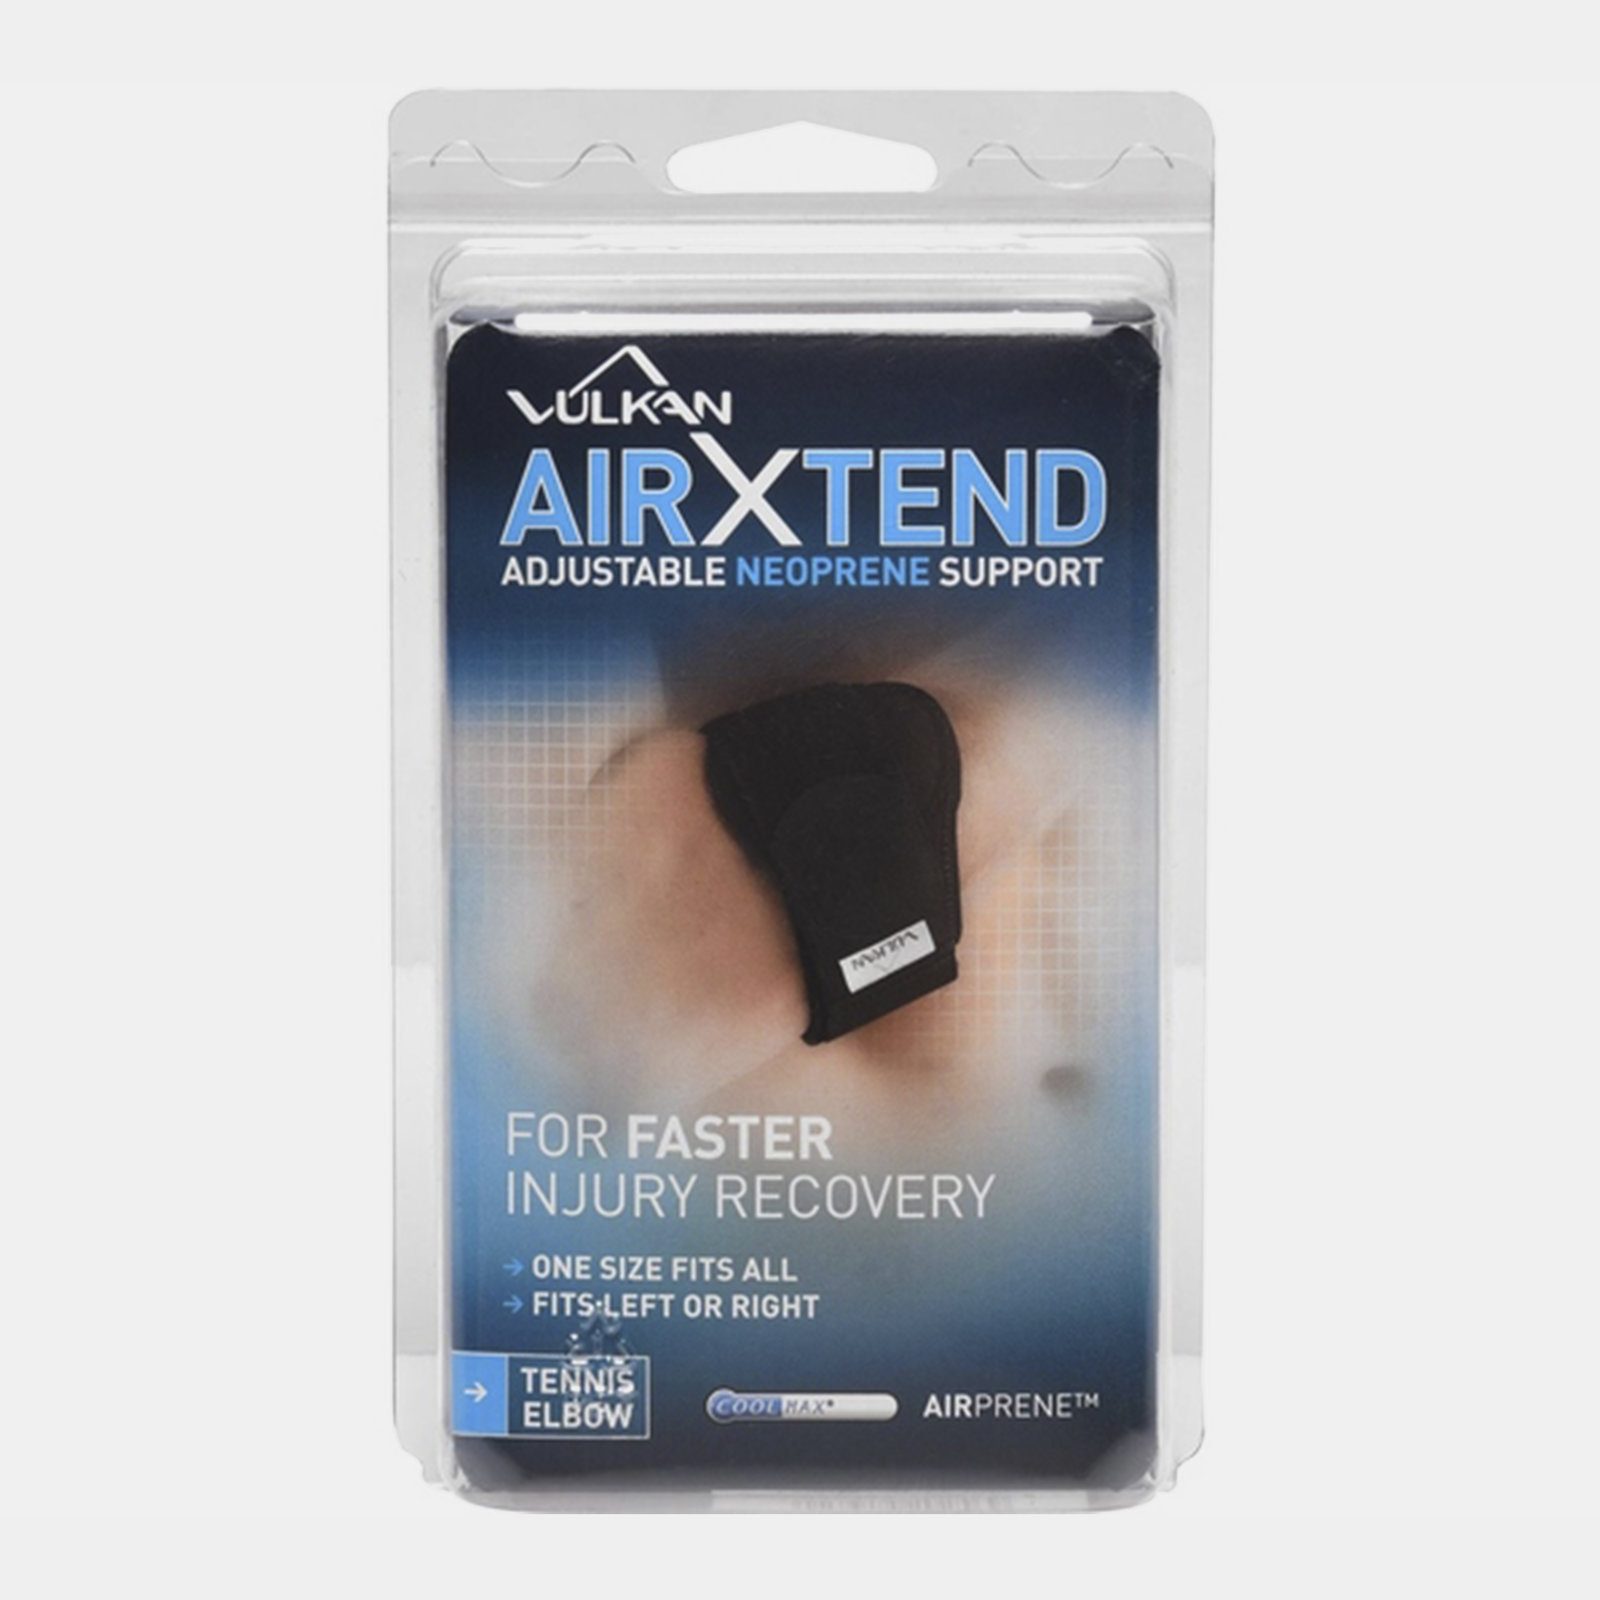 Image of Airxtend Tennis Elbow Support